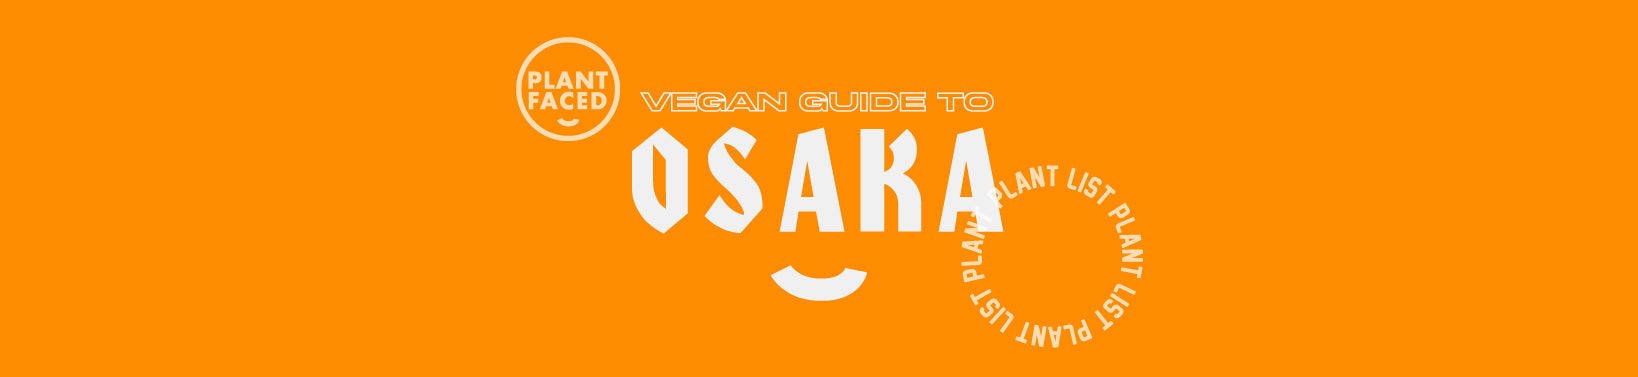 THE PLANT LIST X Vegan Guide to Osaka